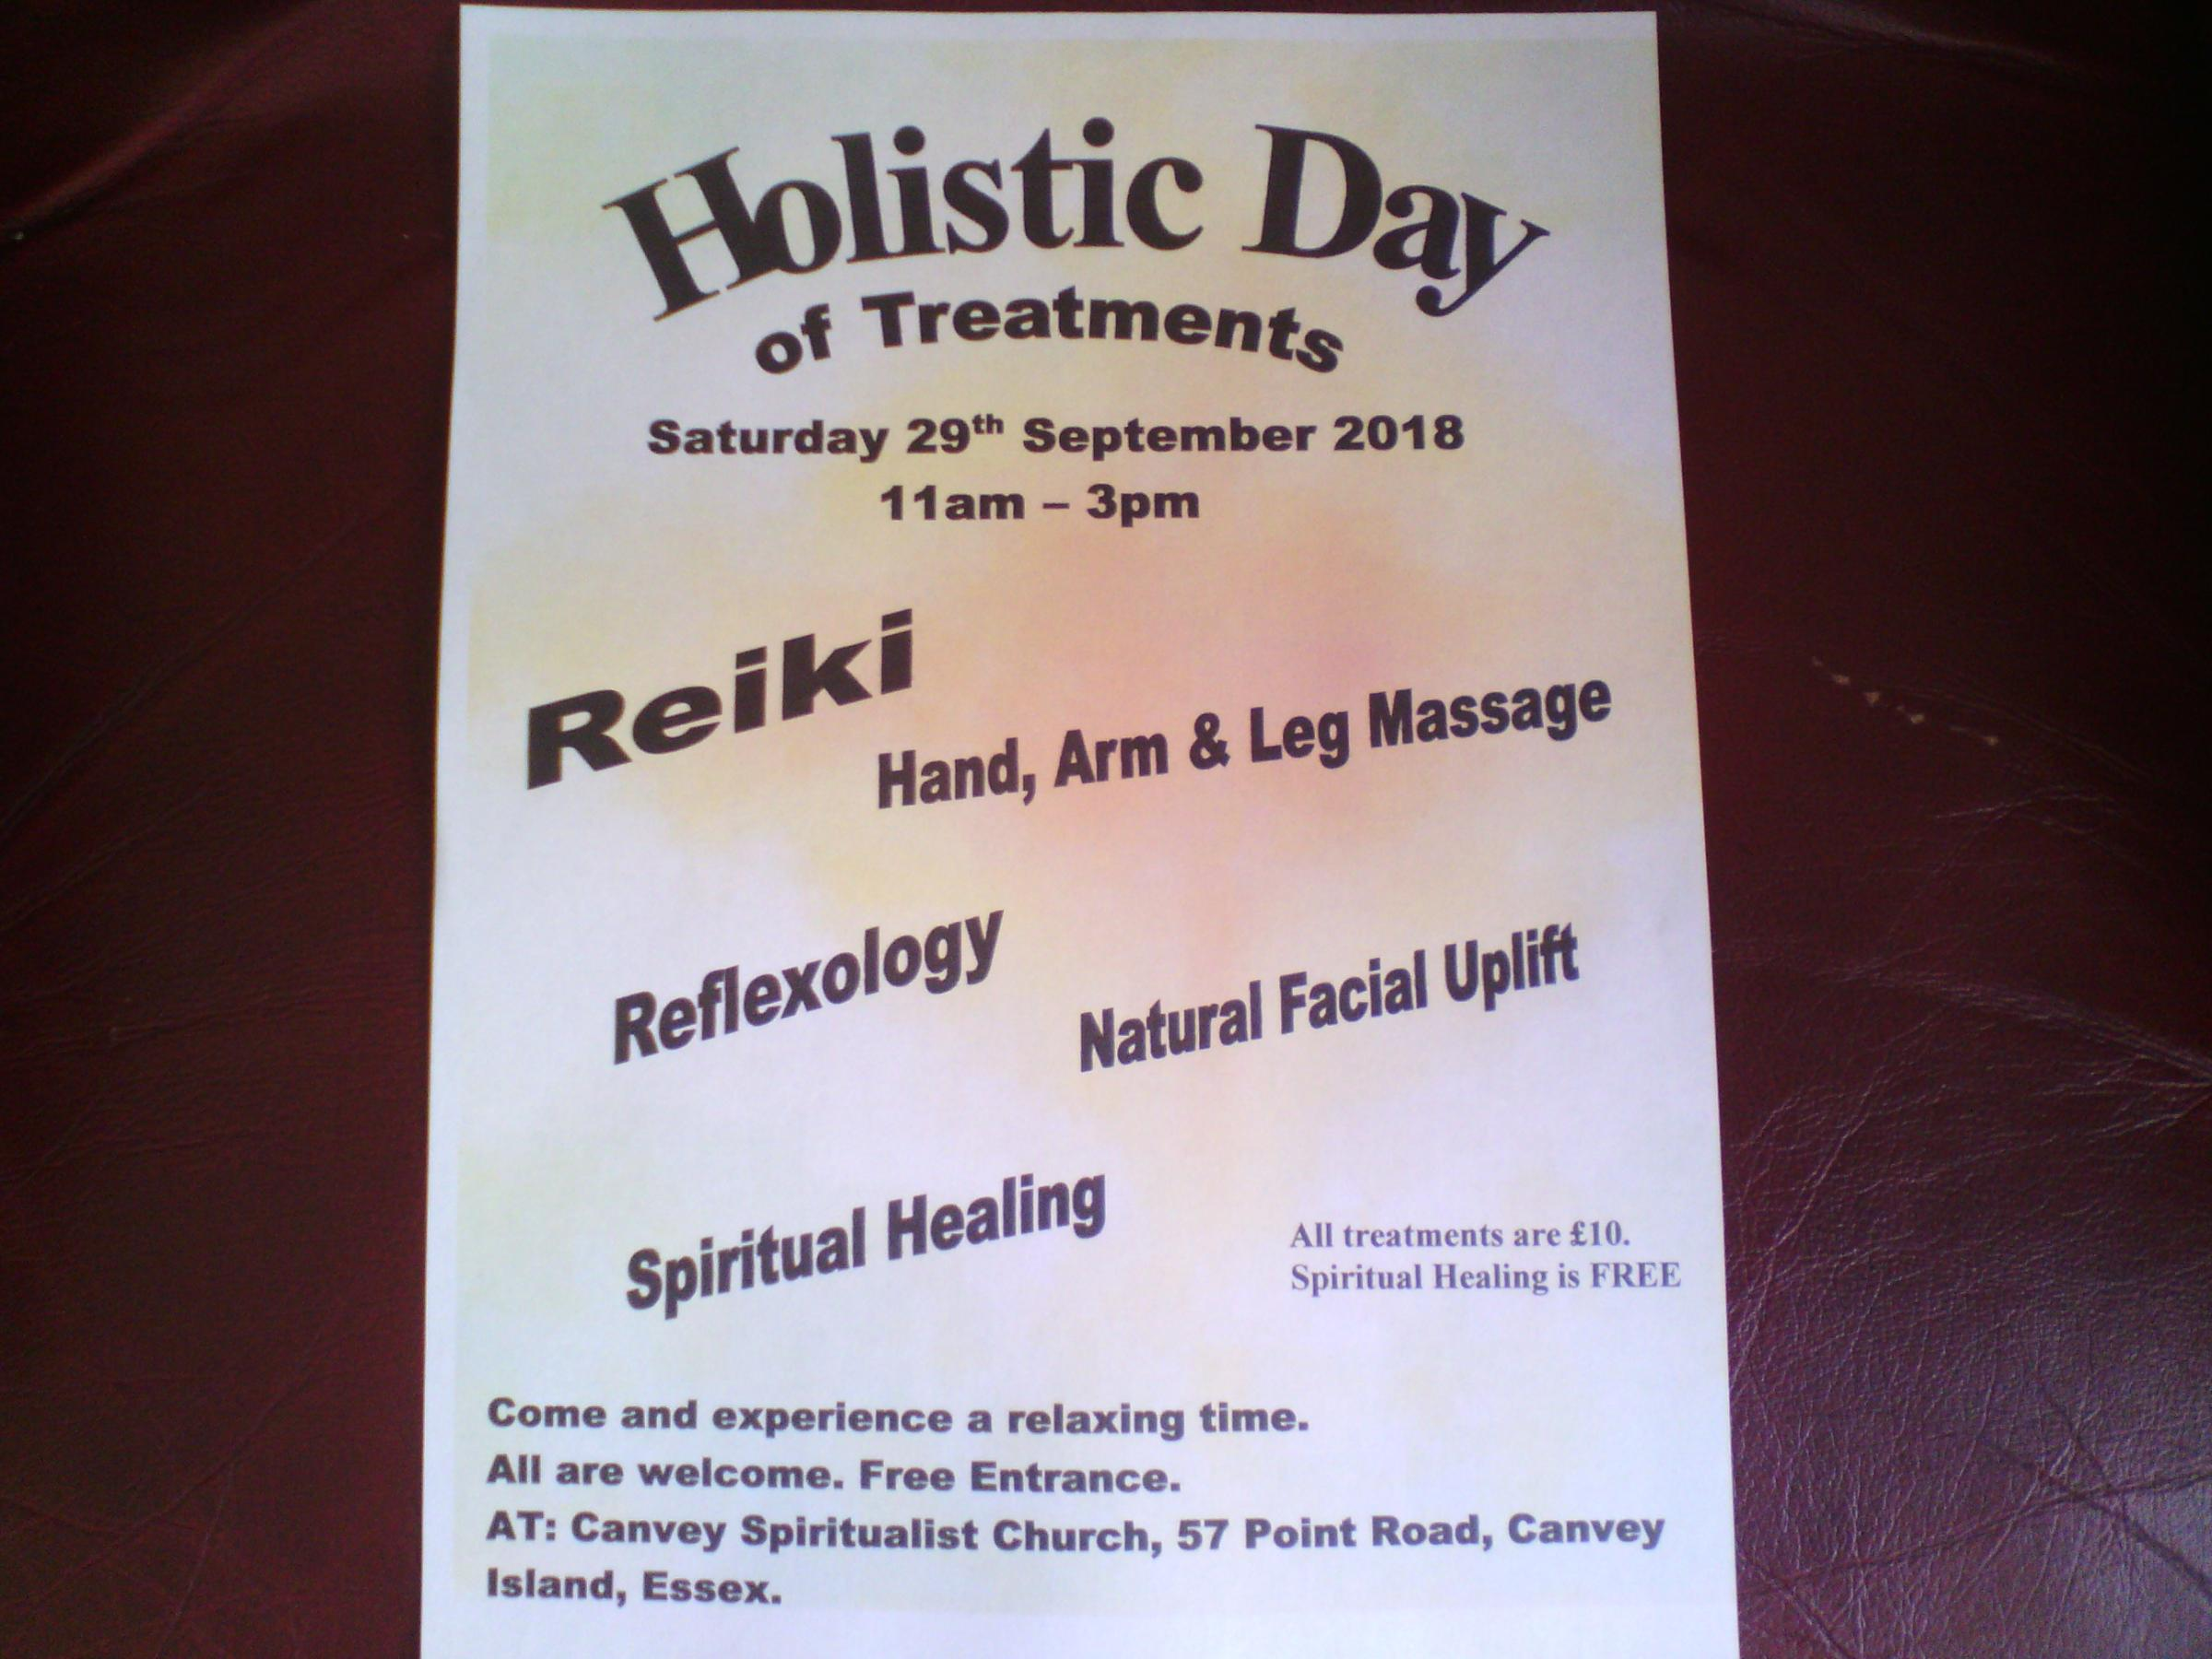 Holistic Day of Treatments